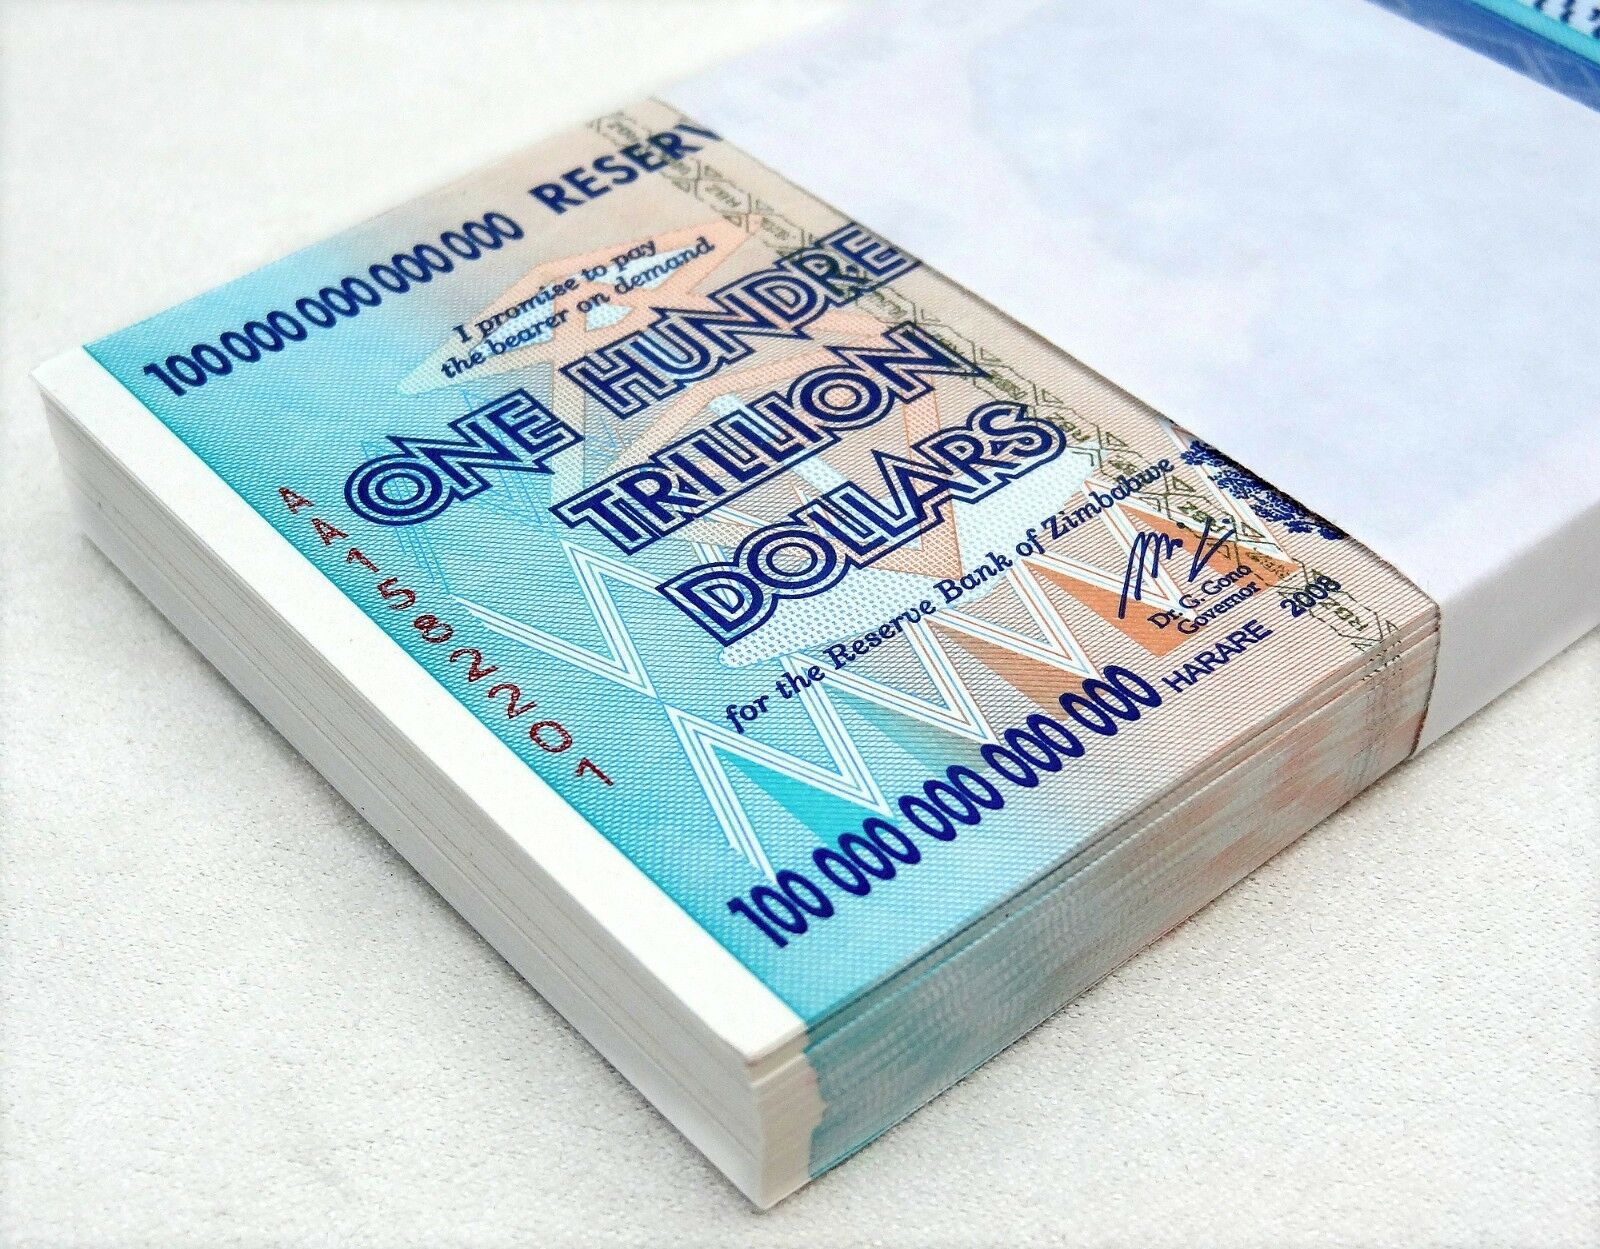 ZIMBABWE 100 TRILLION DOLLARS 2008 AA SERIES P91 UNC, 100 NOTES UV INSPECTED COA